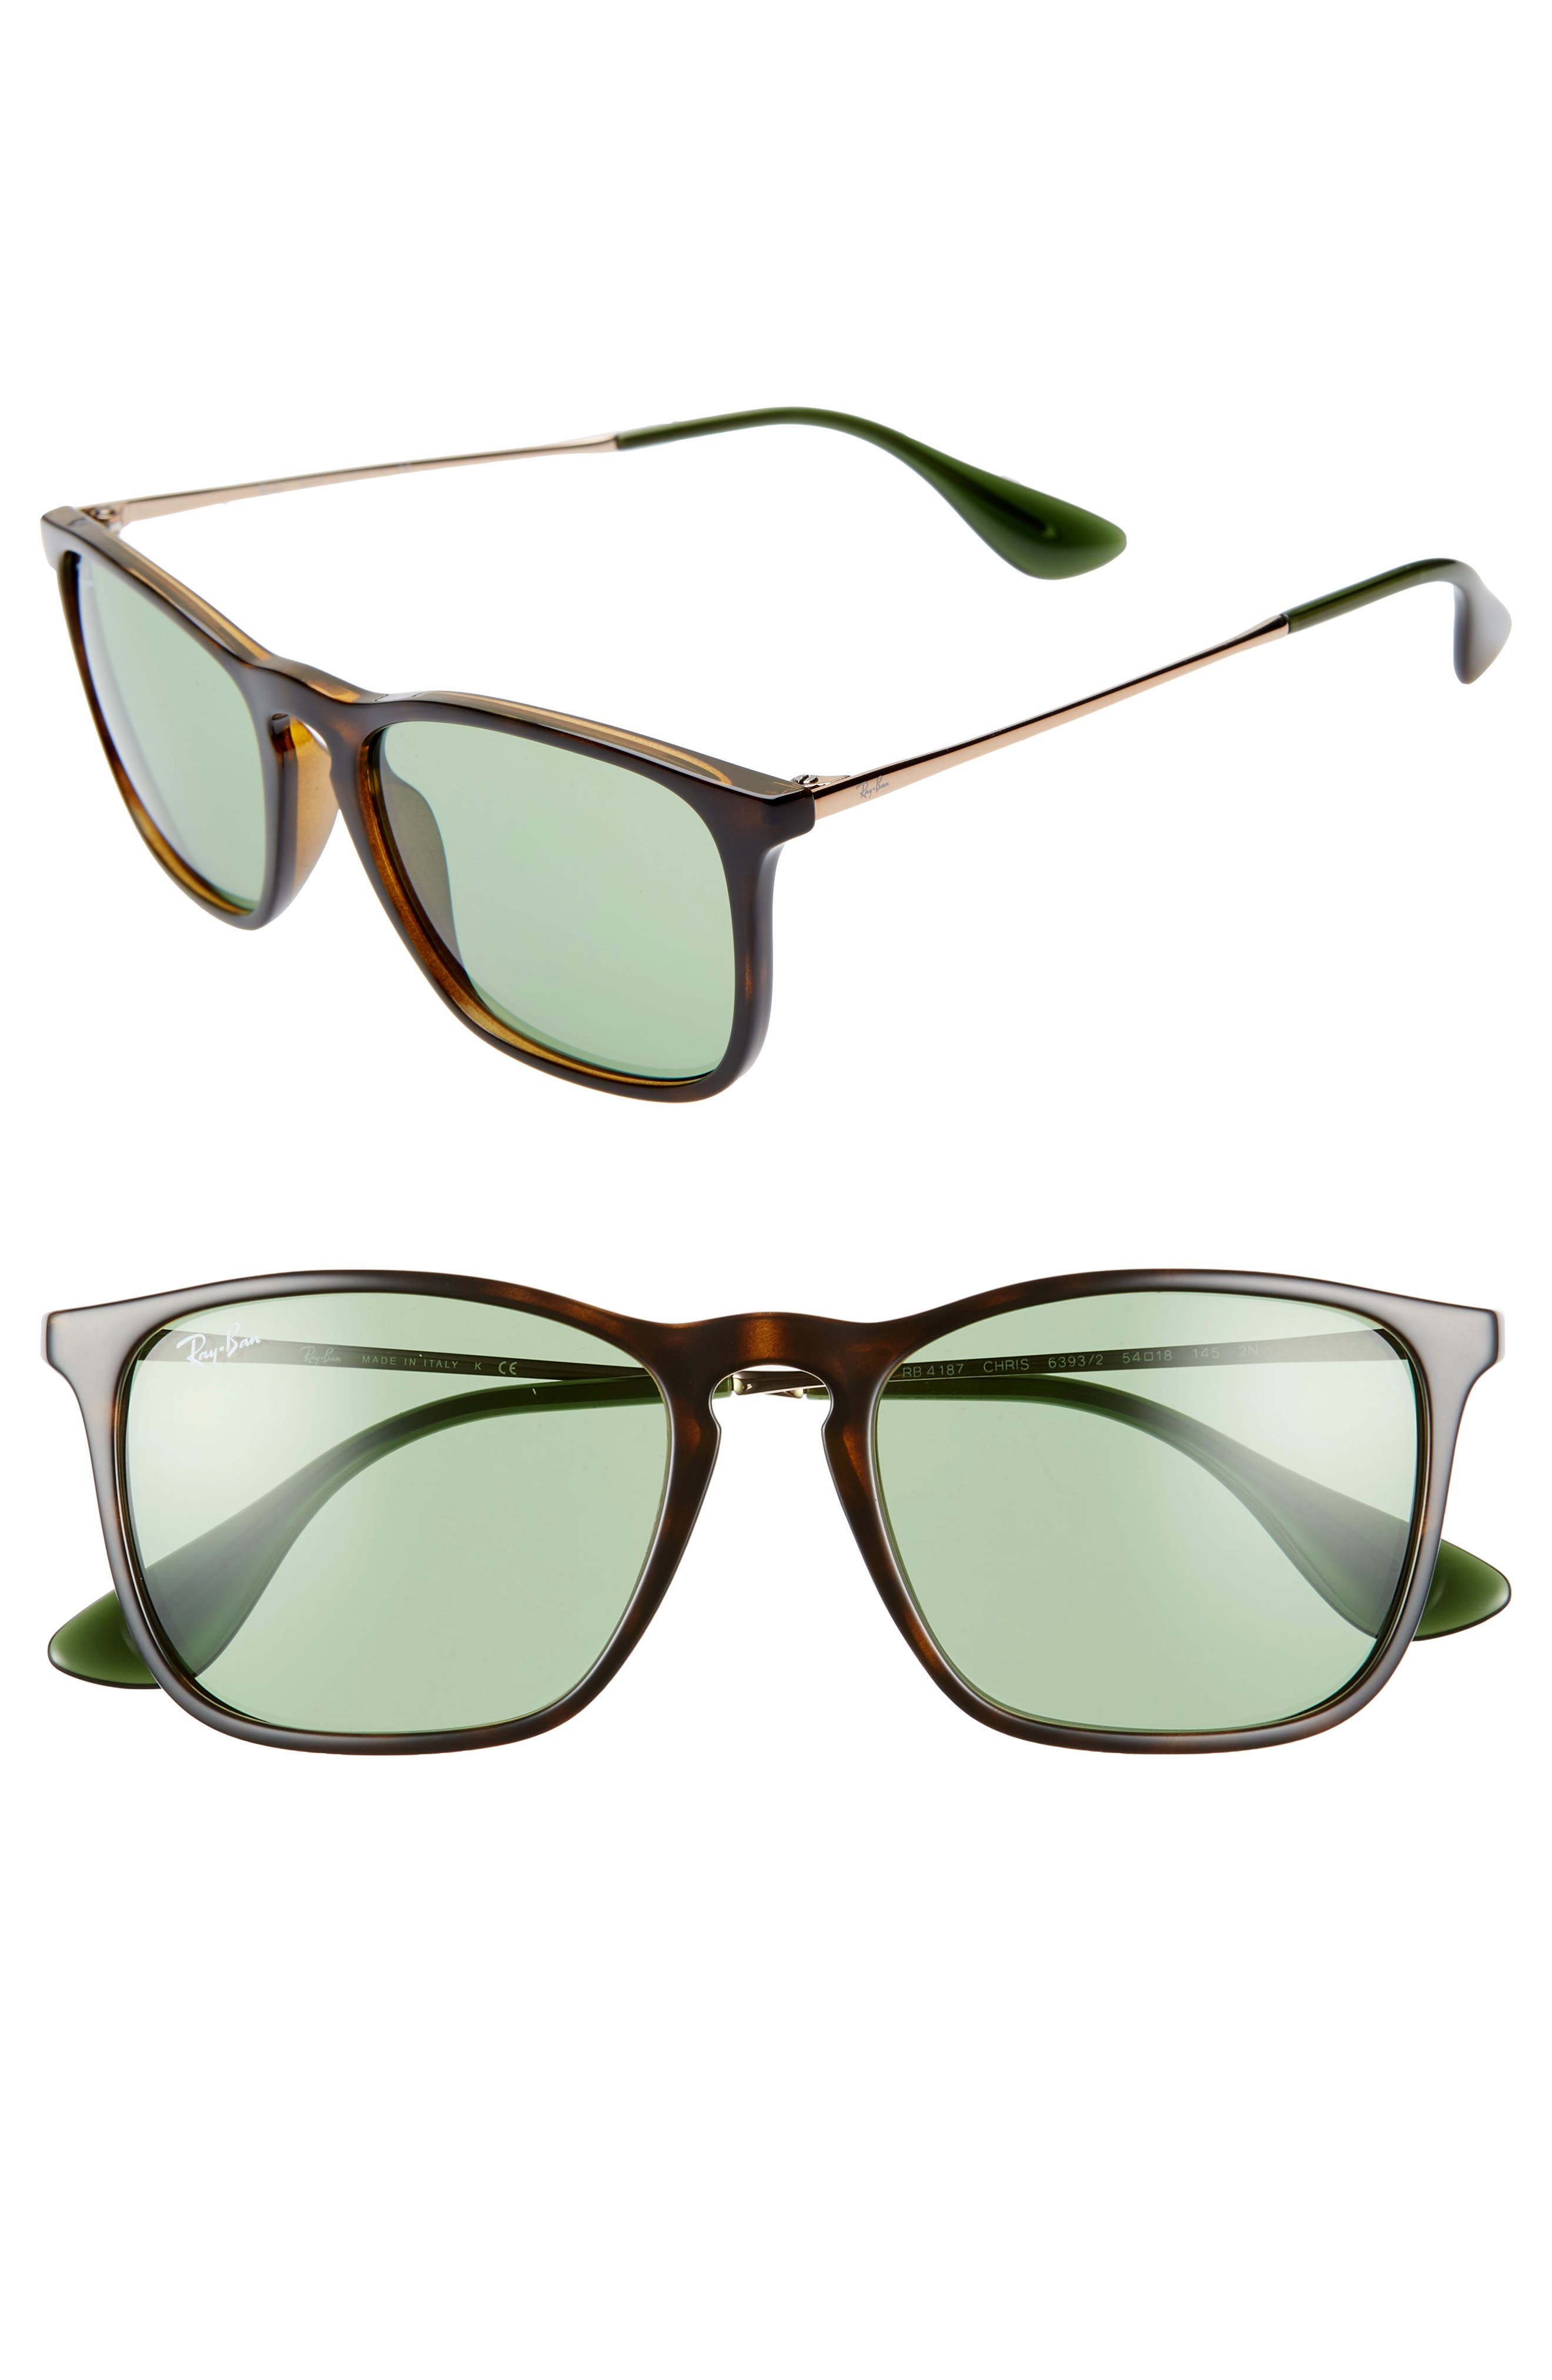 0b3f3962a Ray-Ban Youngster 5m Square Keyhole Sunglasses - Tortoise/ Green Solid